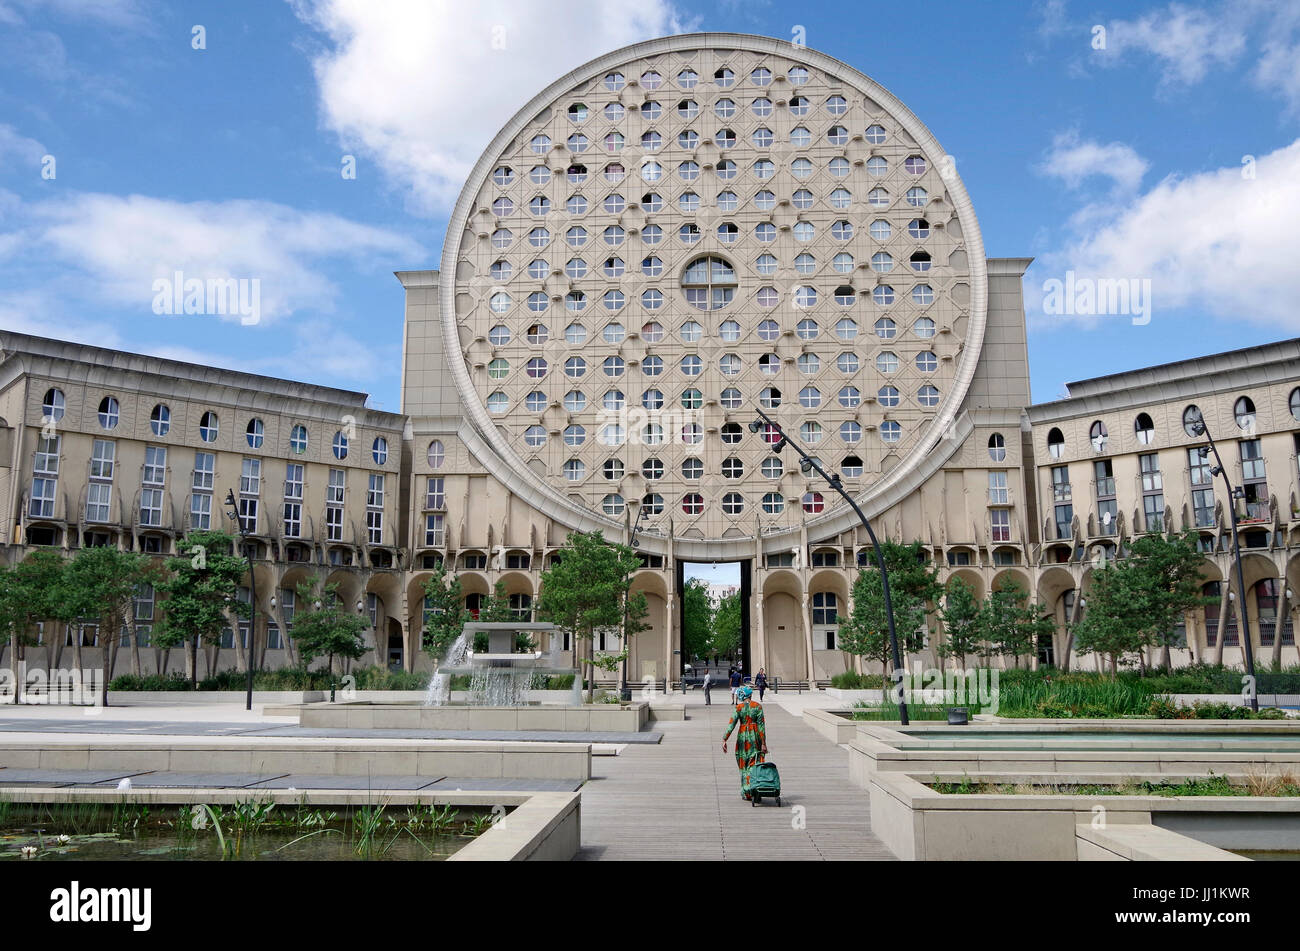 Les Arenes de Picasso, Housing development, aka Les Camemberts, West wing, viewed from within octagonal courtyard Stock Photo